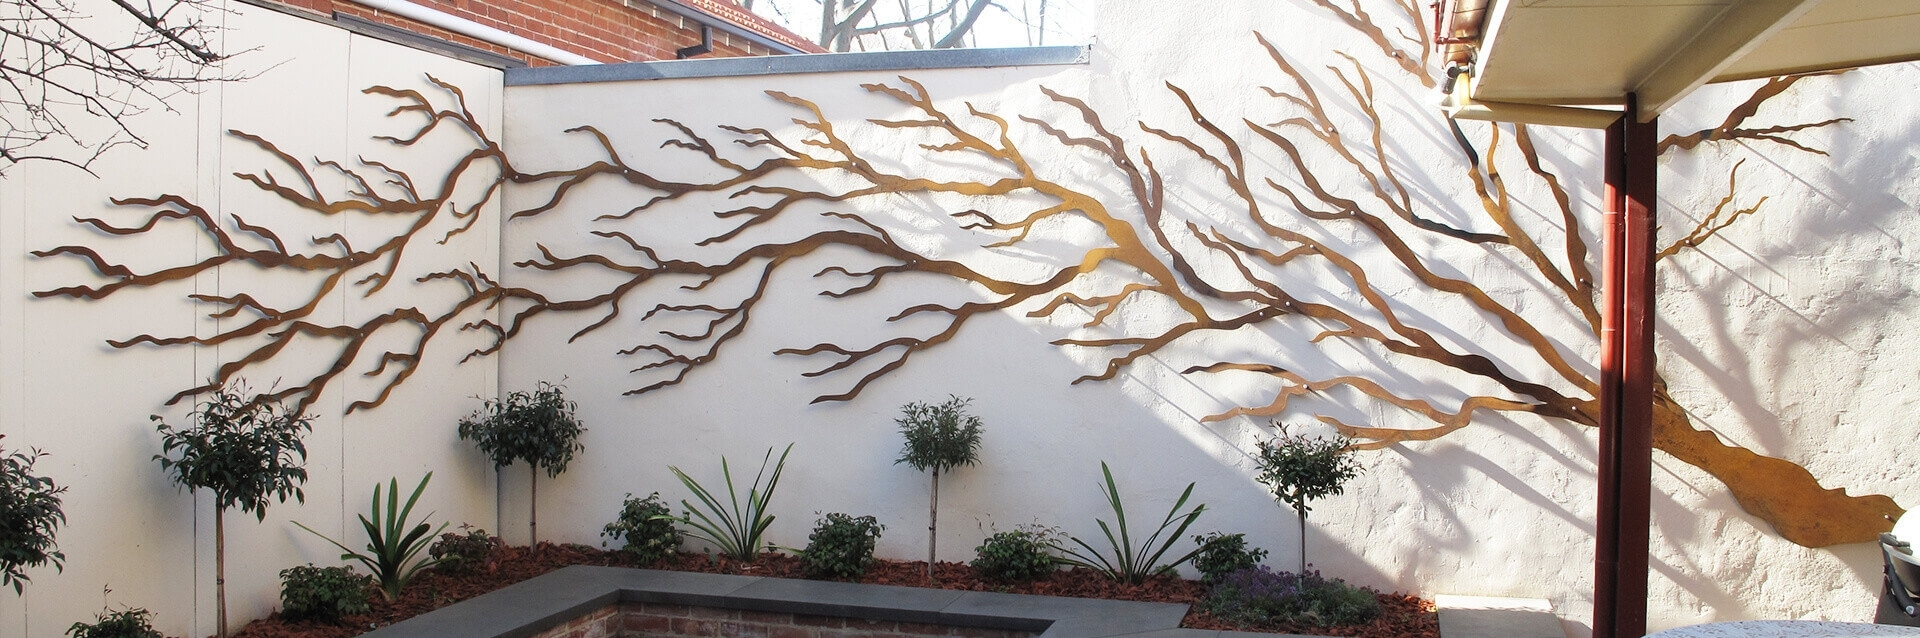 Outdoor : Metal Wall Sculpture Outdoor Wall Decorations Garden Inside 2018 Australia Wall Accents (Gallery 7 of 15)